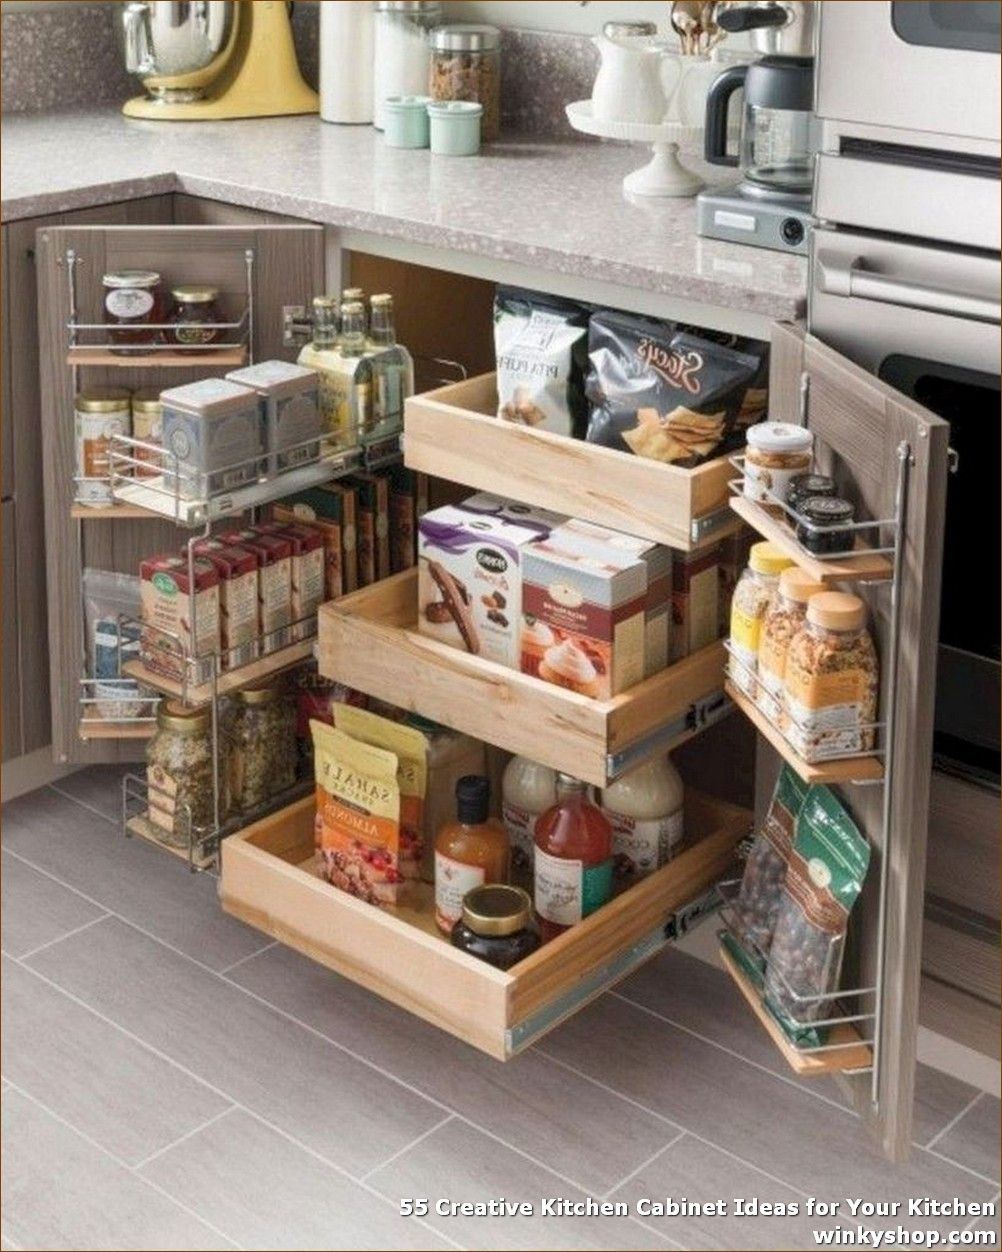 55 Creative Kitchen Cabinet Ideas For Your Kitchen As Quickly